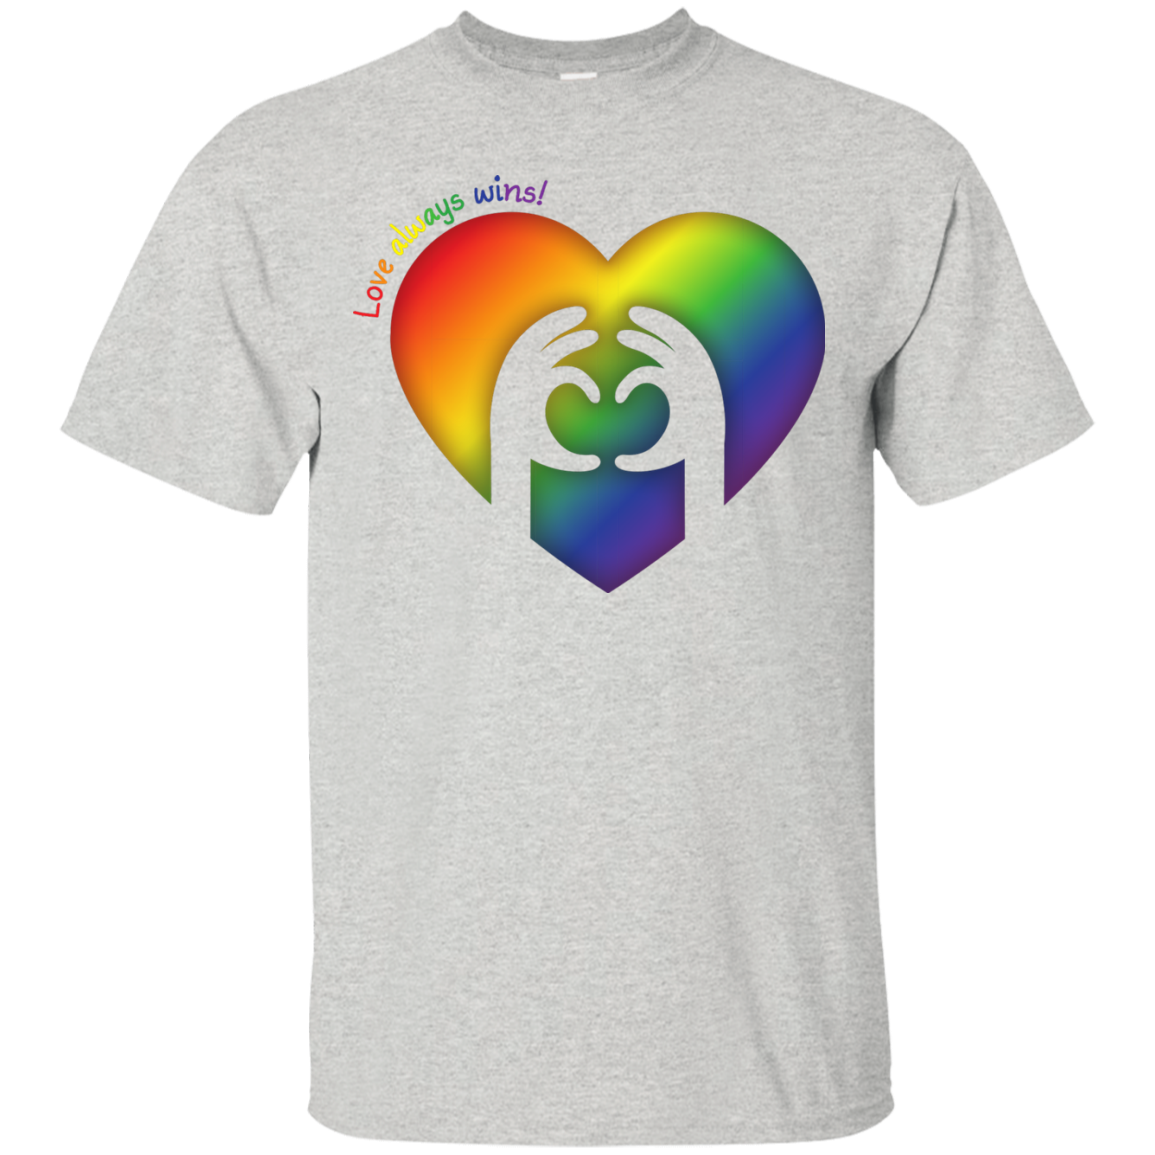 Love Always Wins Lgbt Pride Shirt Myprideshop